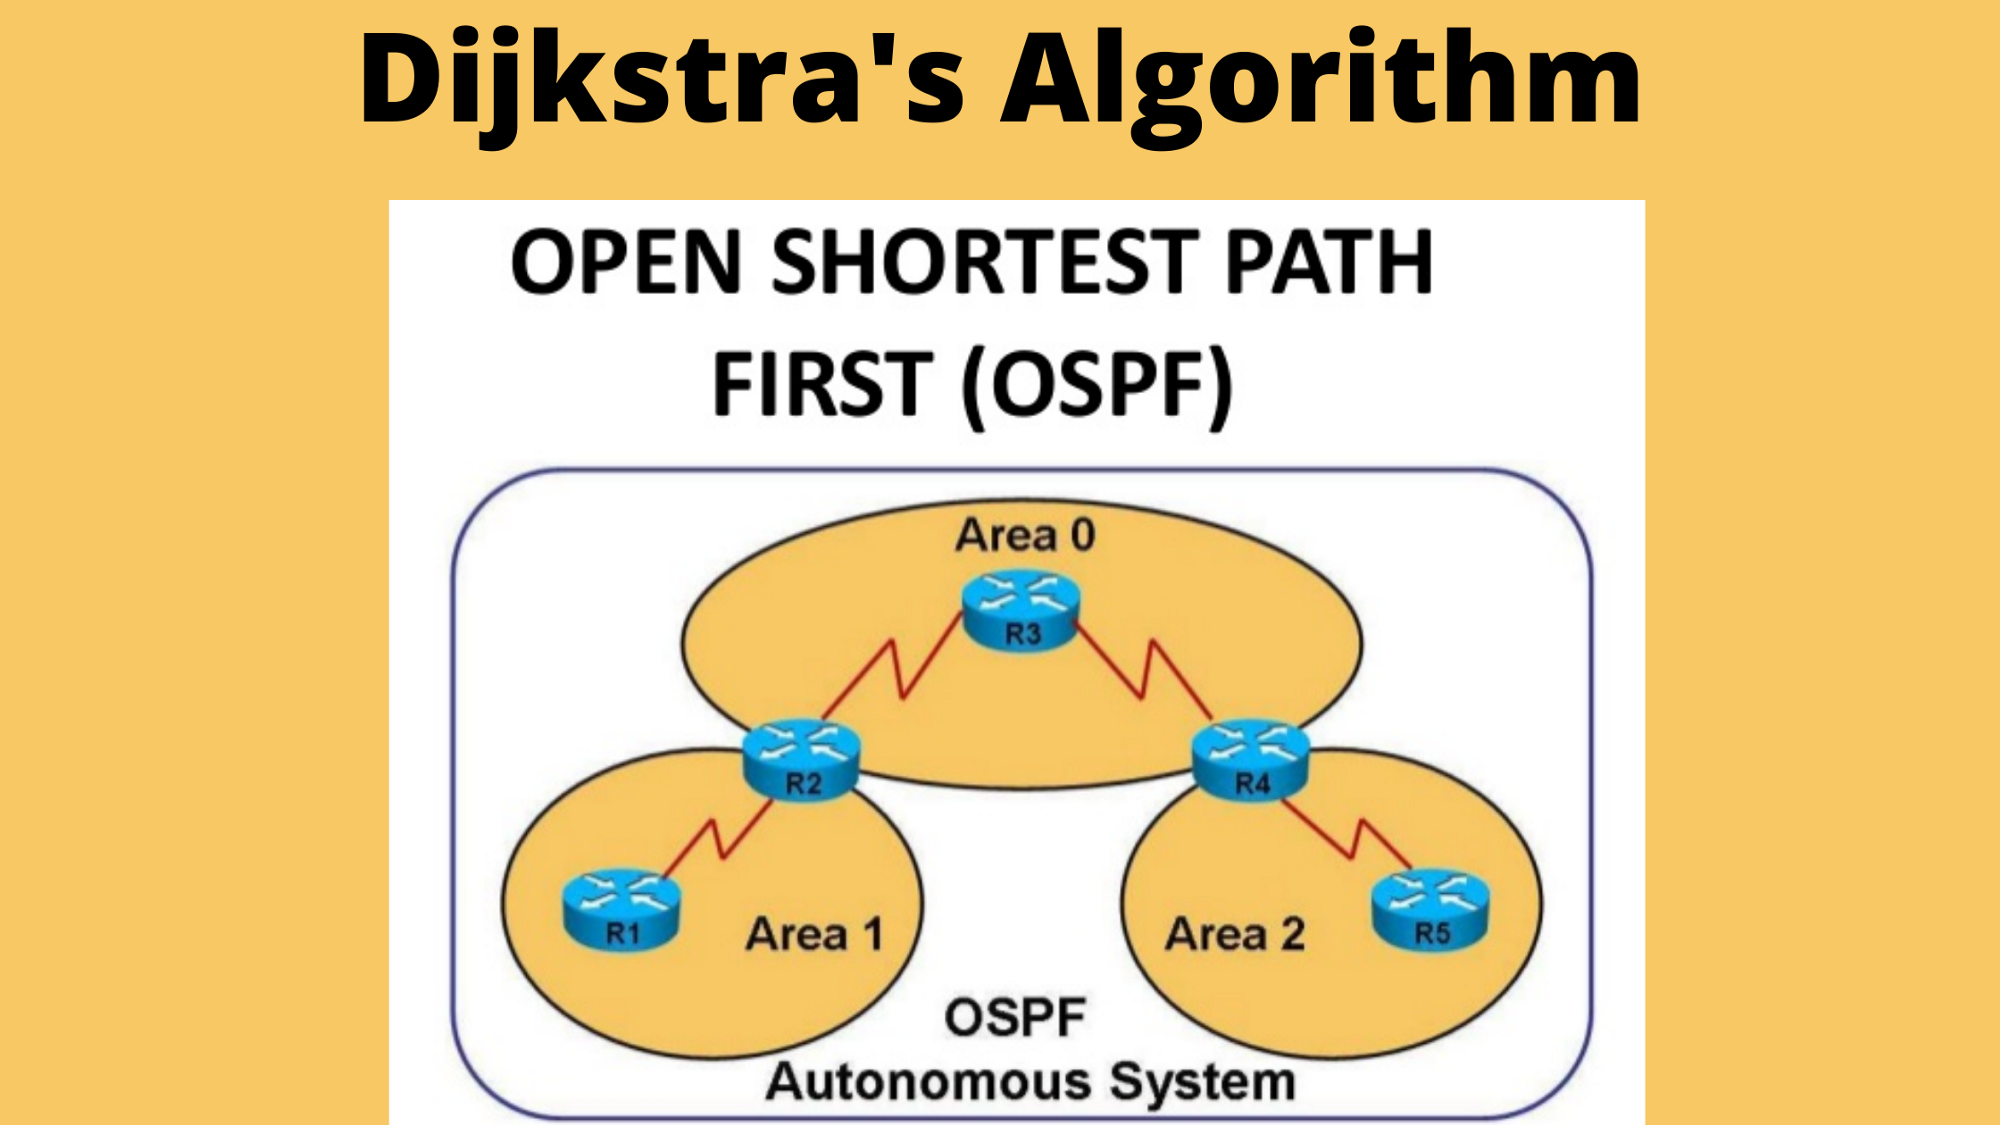 OSPF, Dijkstra's Algorithm, Routing Protocol, Shotest Path First, Open Shortest Path First, Internet, Networking Concepts